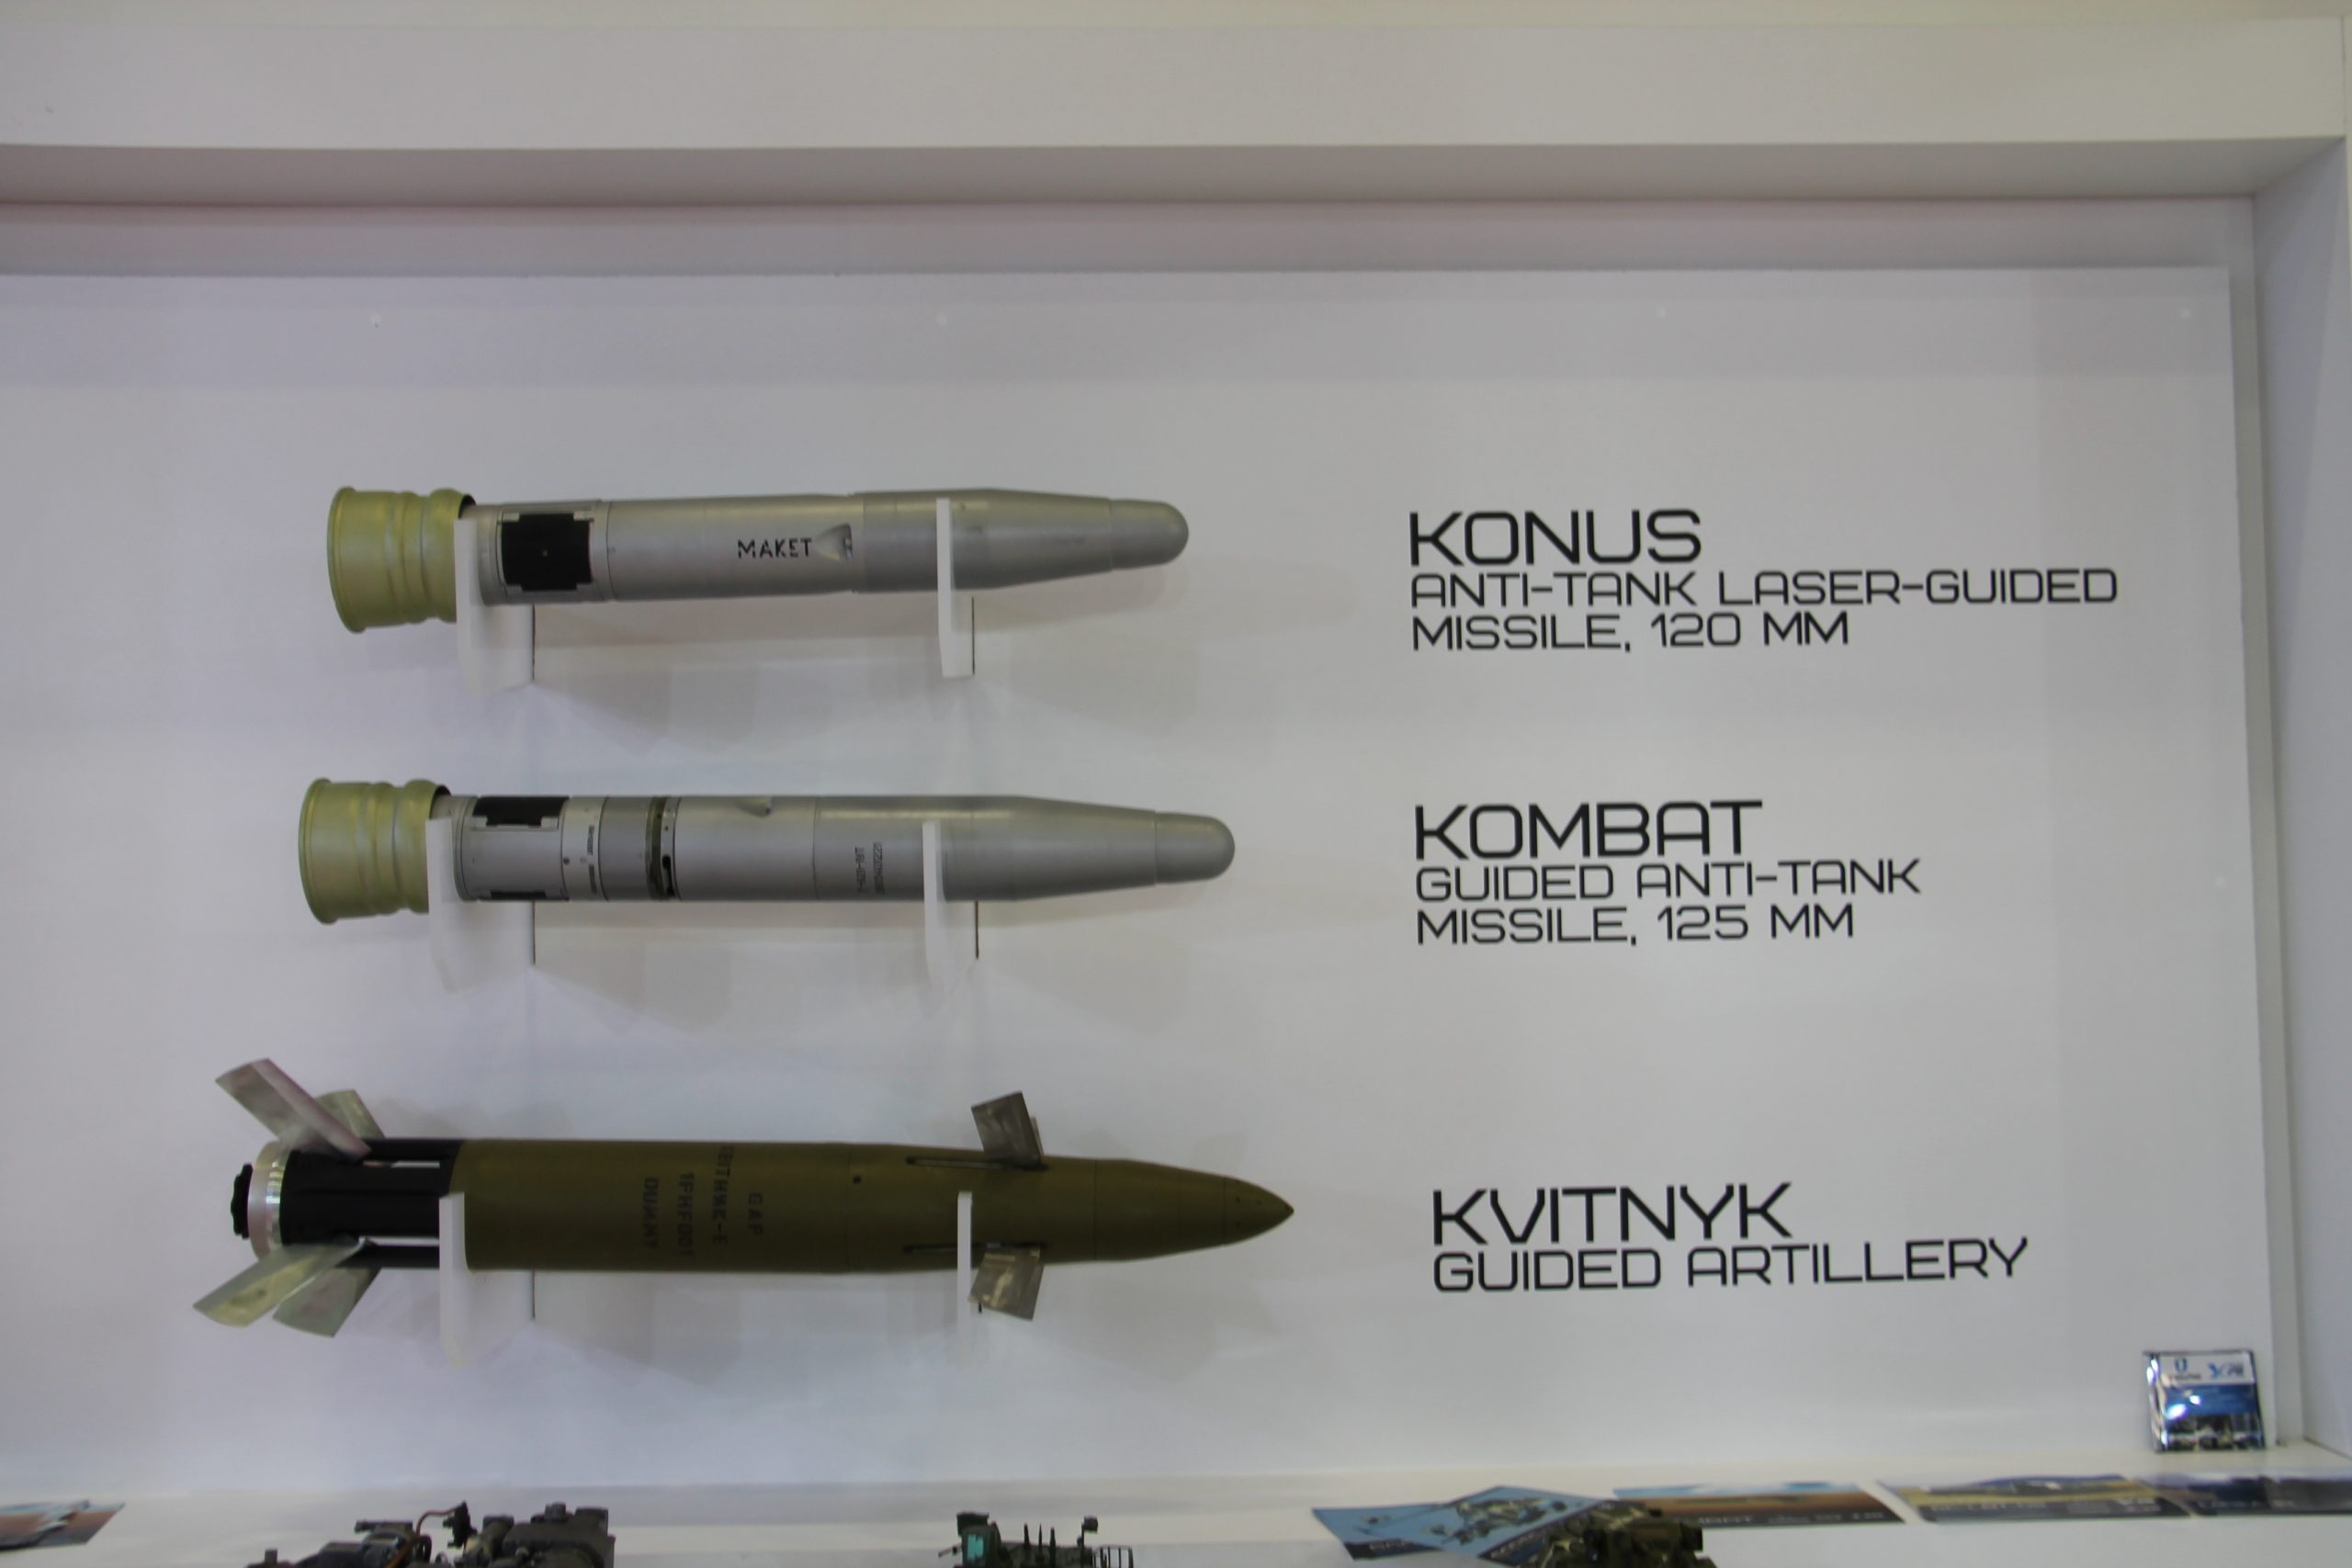 The Ukraine has developed a number of guided projectiles